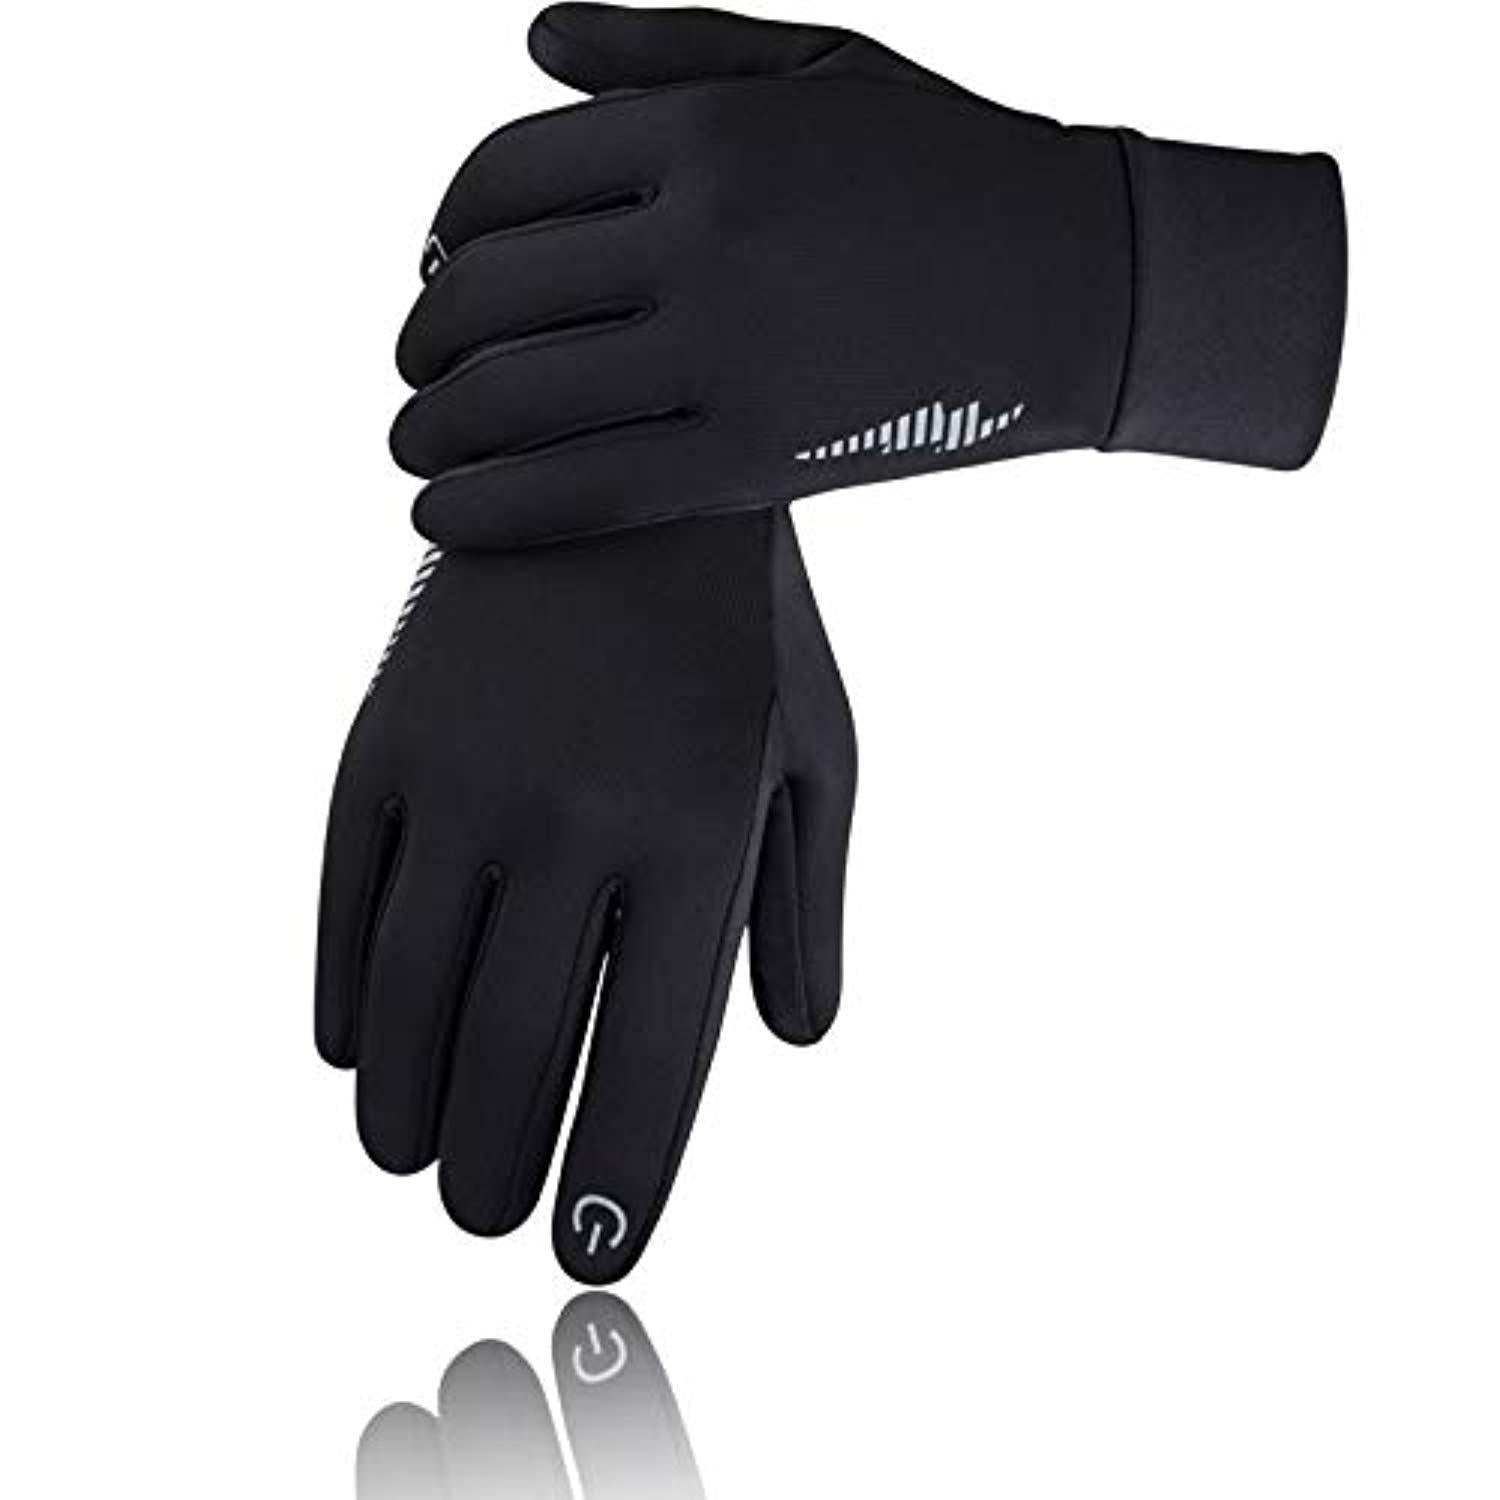 Texting Gloves Gray Black Stripes Ladies Touch Screen Smart Phone Compatible